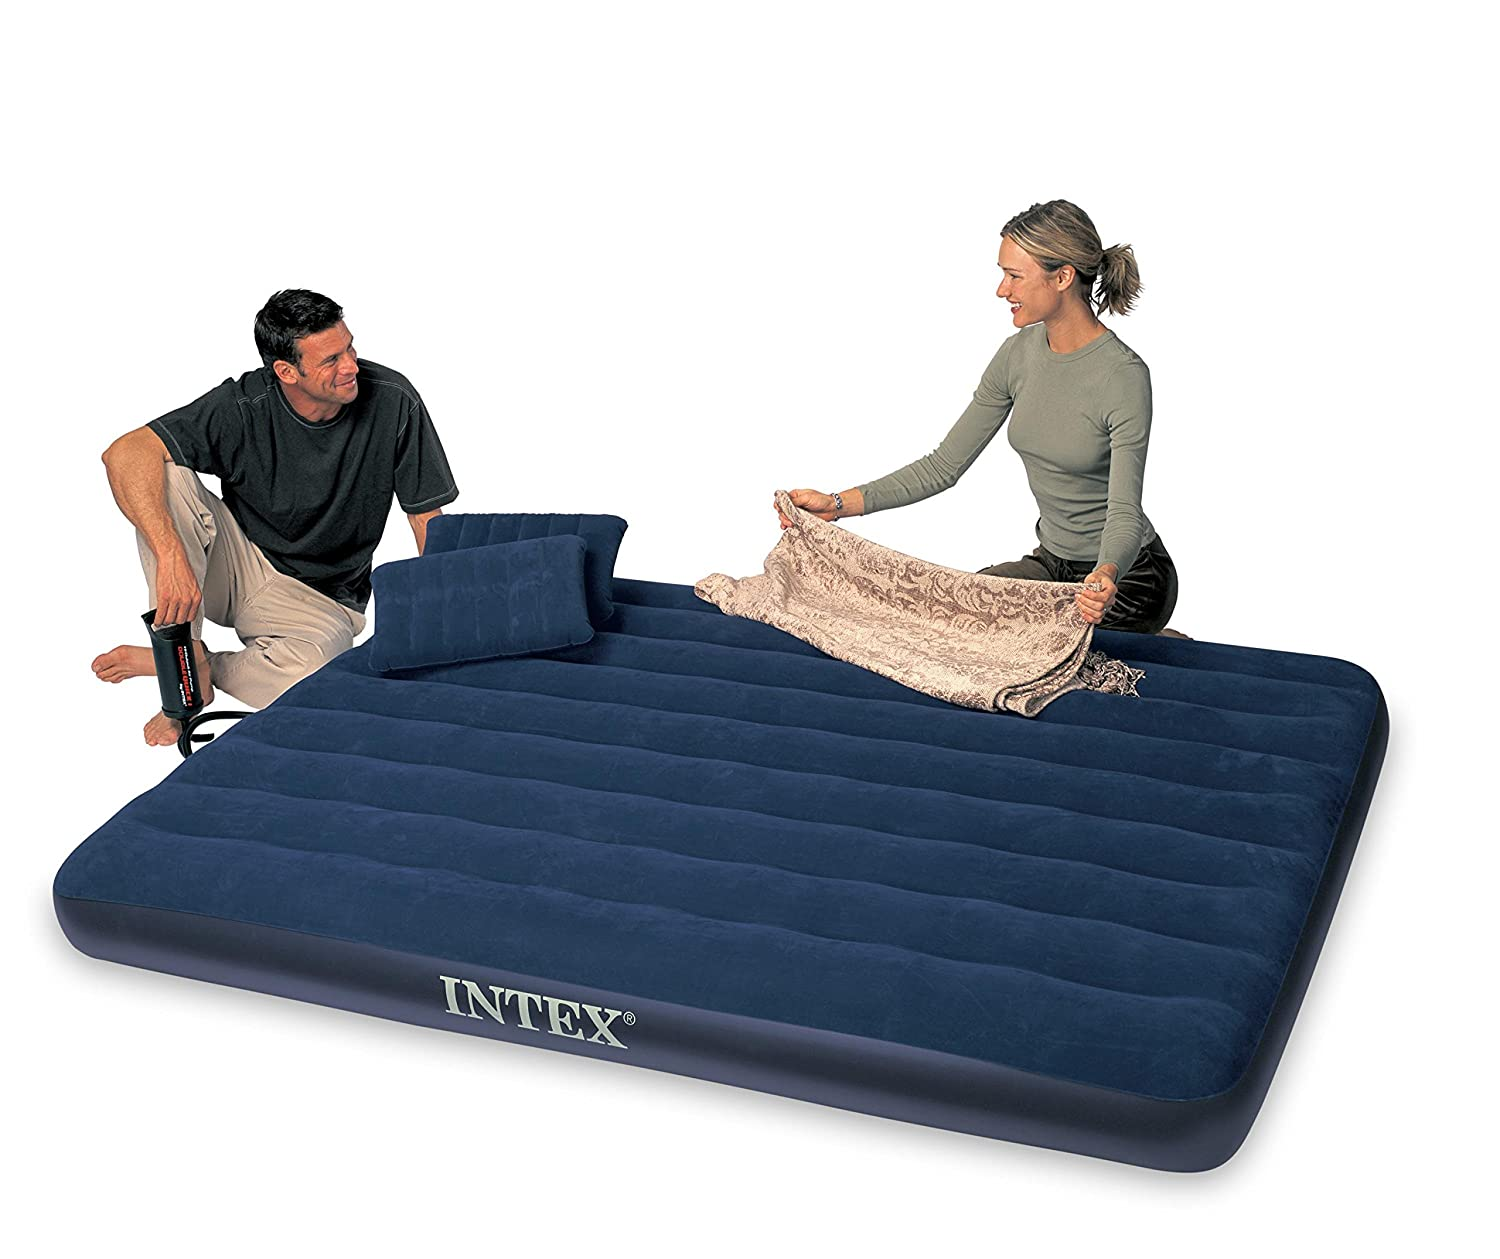 the best extra long air mattress for tall people sleeping with air